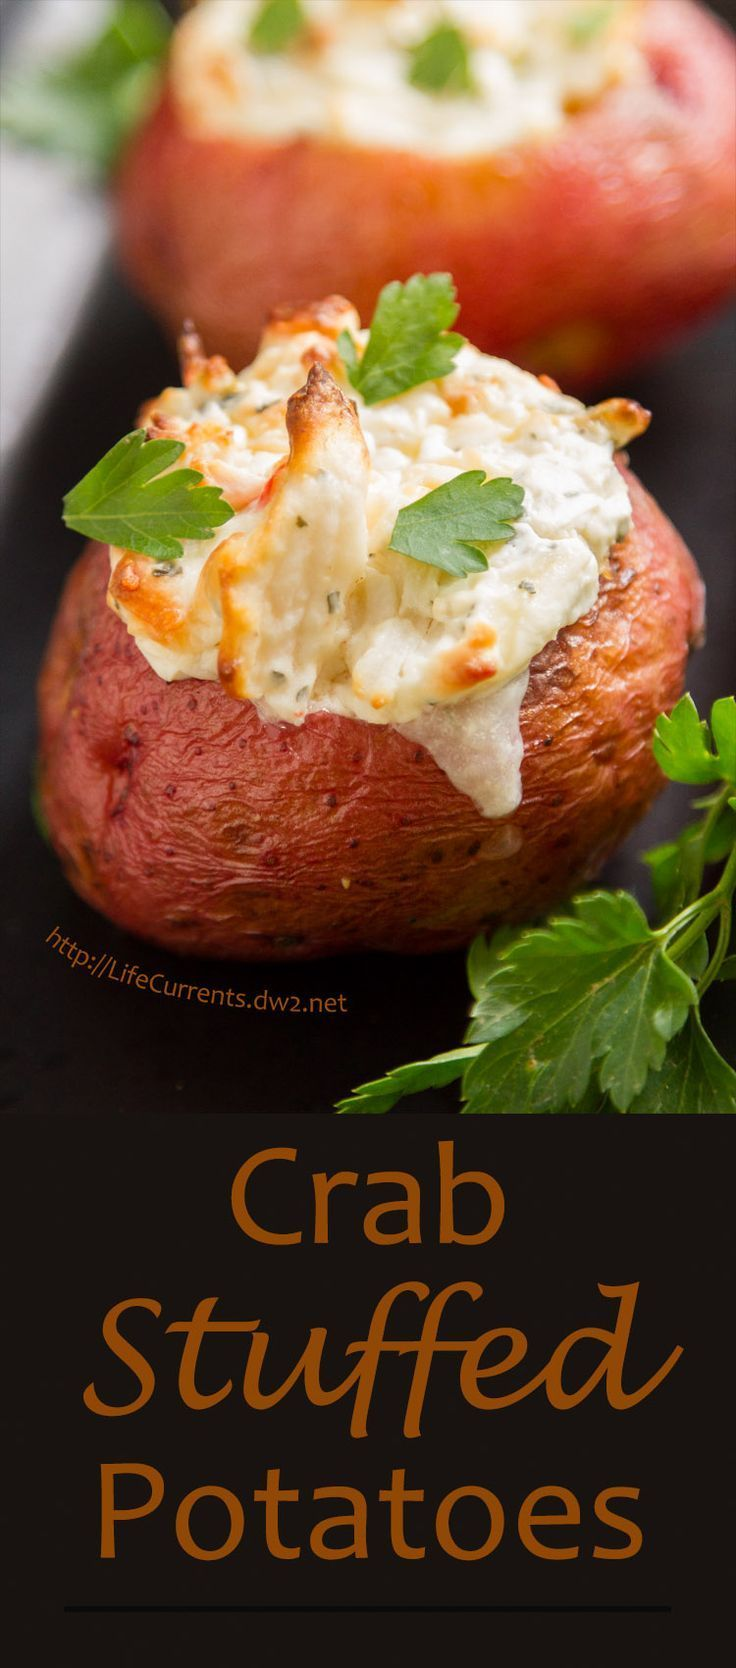 Crab Stuffed Baked Potato - delicious and easy to make! Impress your guests with these awesome tasty potatoes